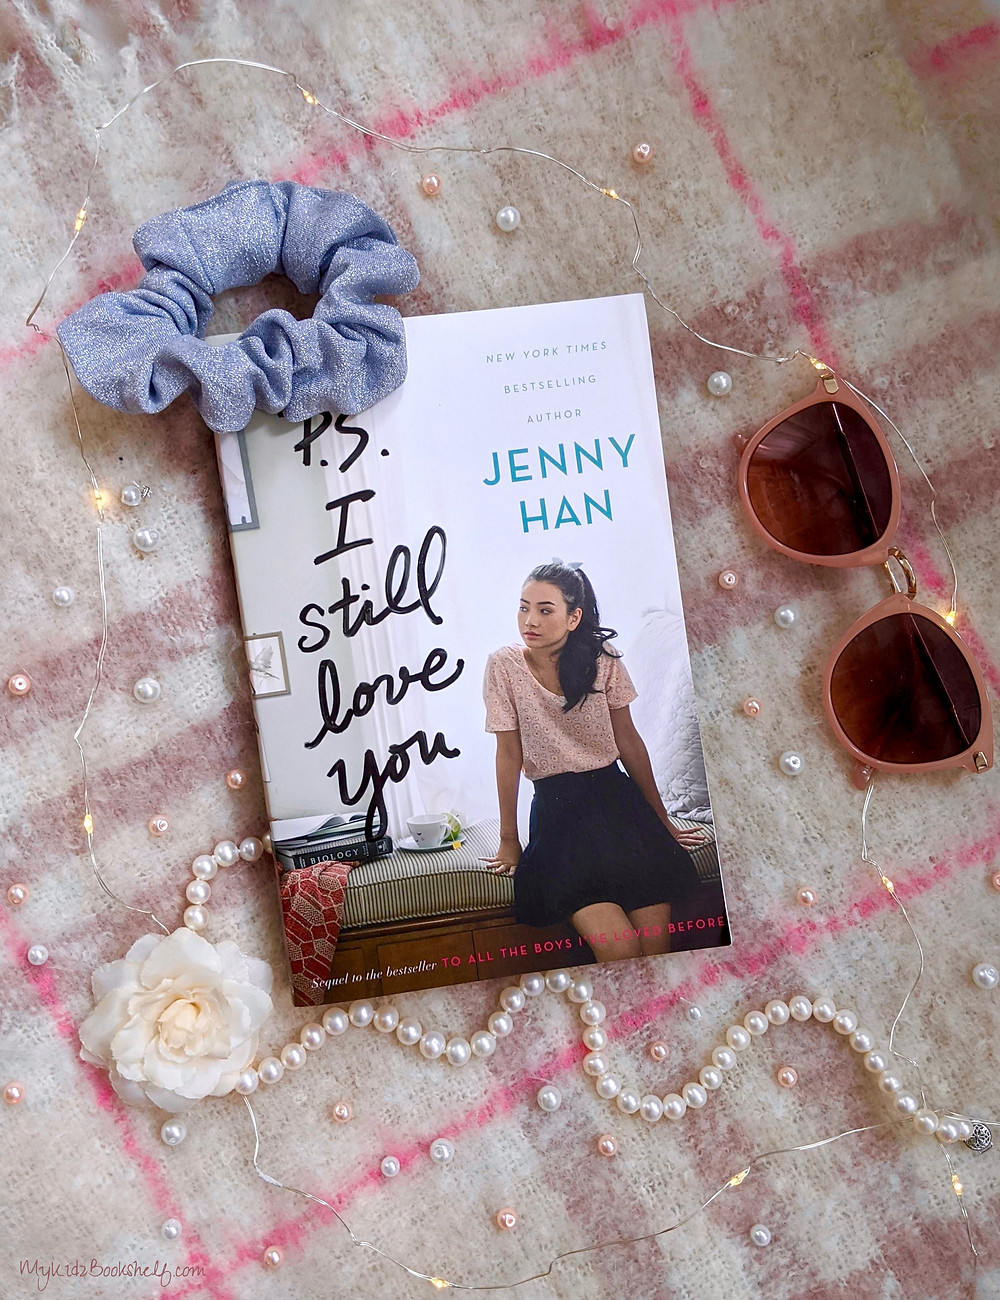 P.S. I still love you by Jenny Han book cover with scrunchie, sunglasses, pearls